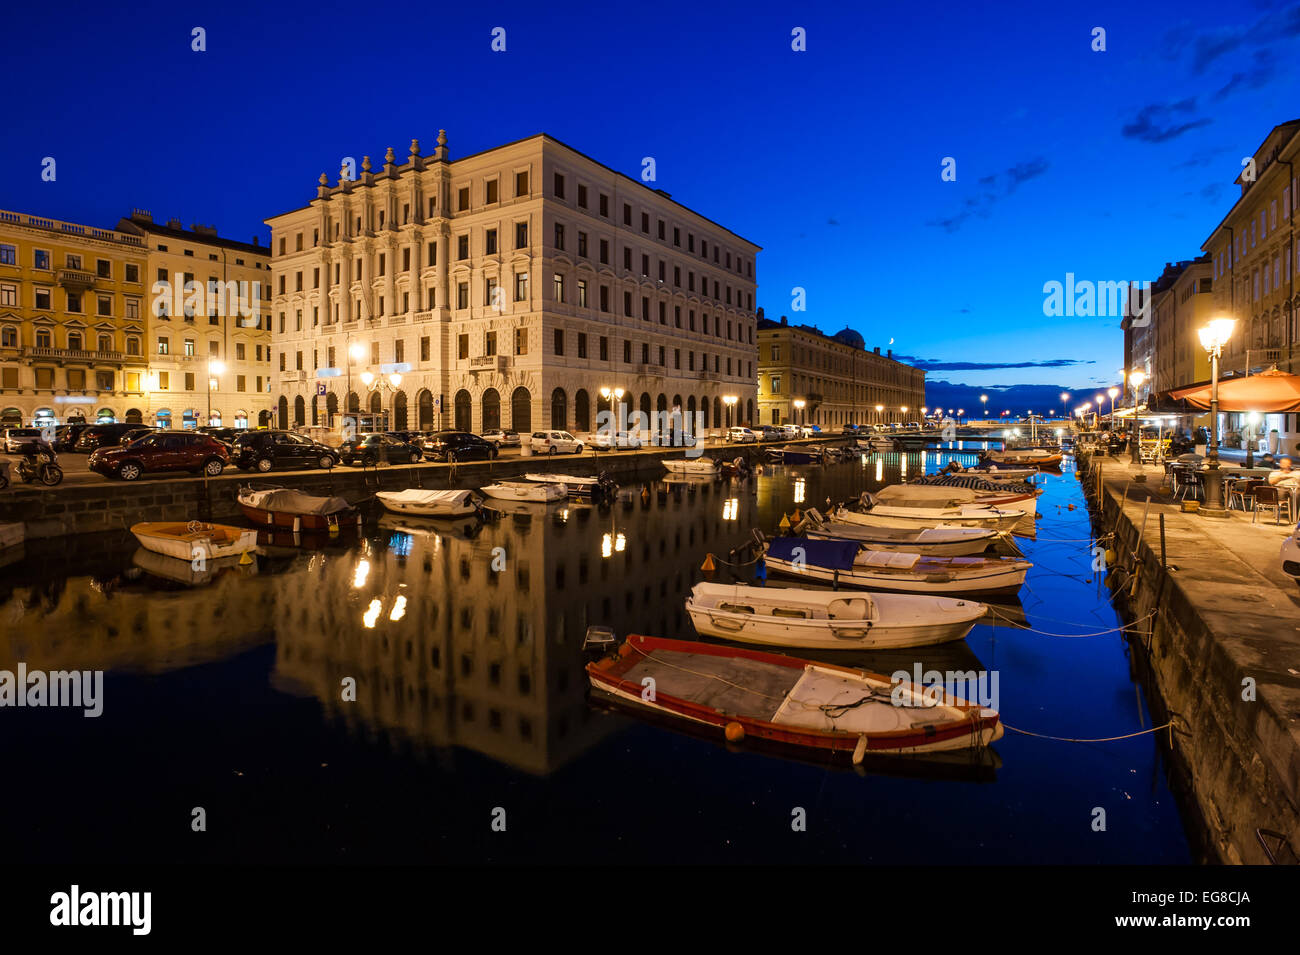 Trieste, Italy - A view of the Gran Canale with boats moored in the water at sunset - Stock Image